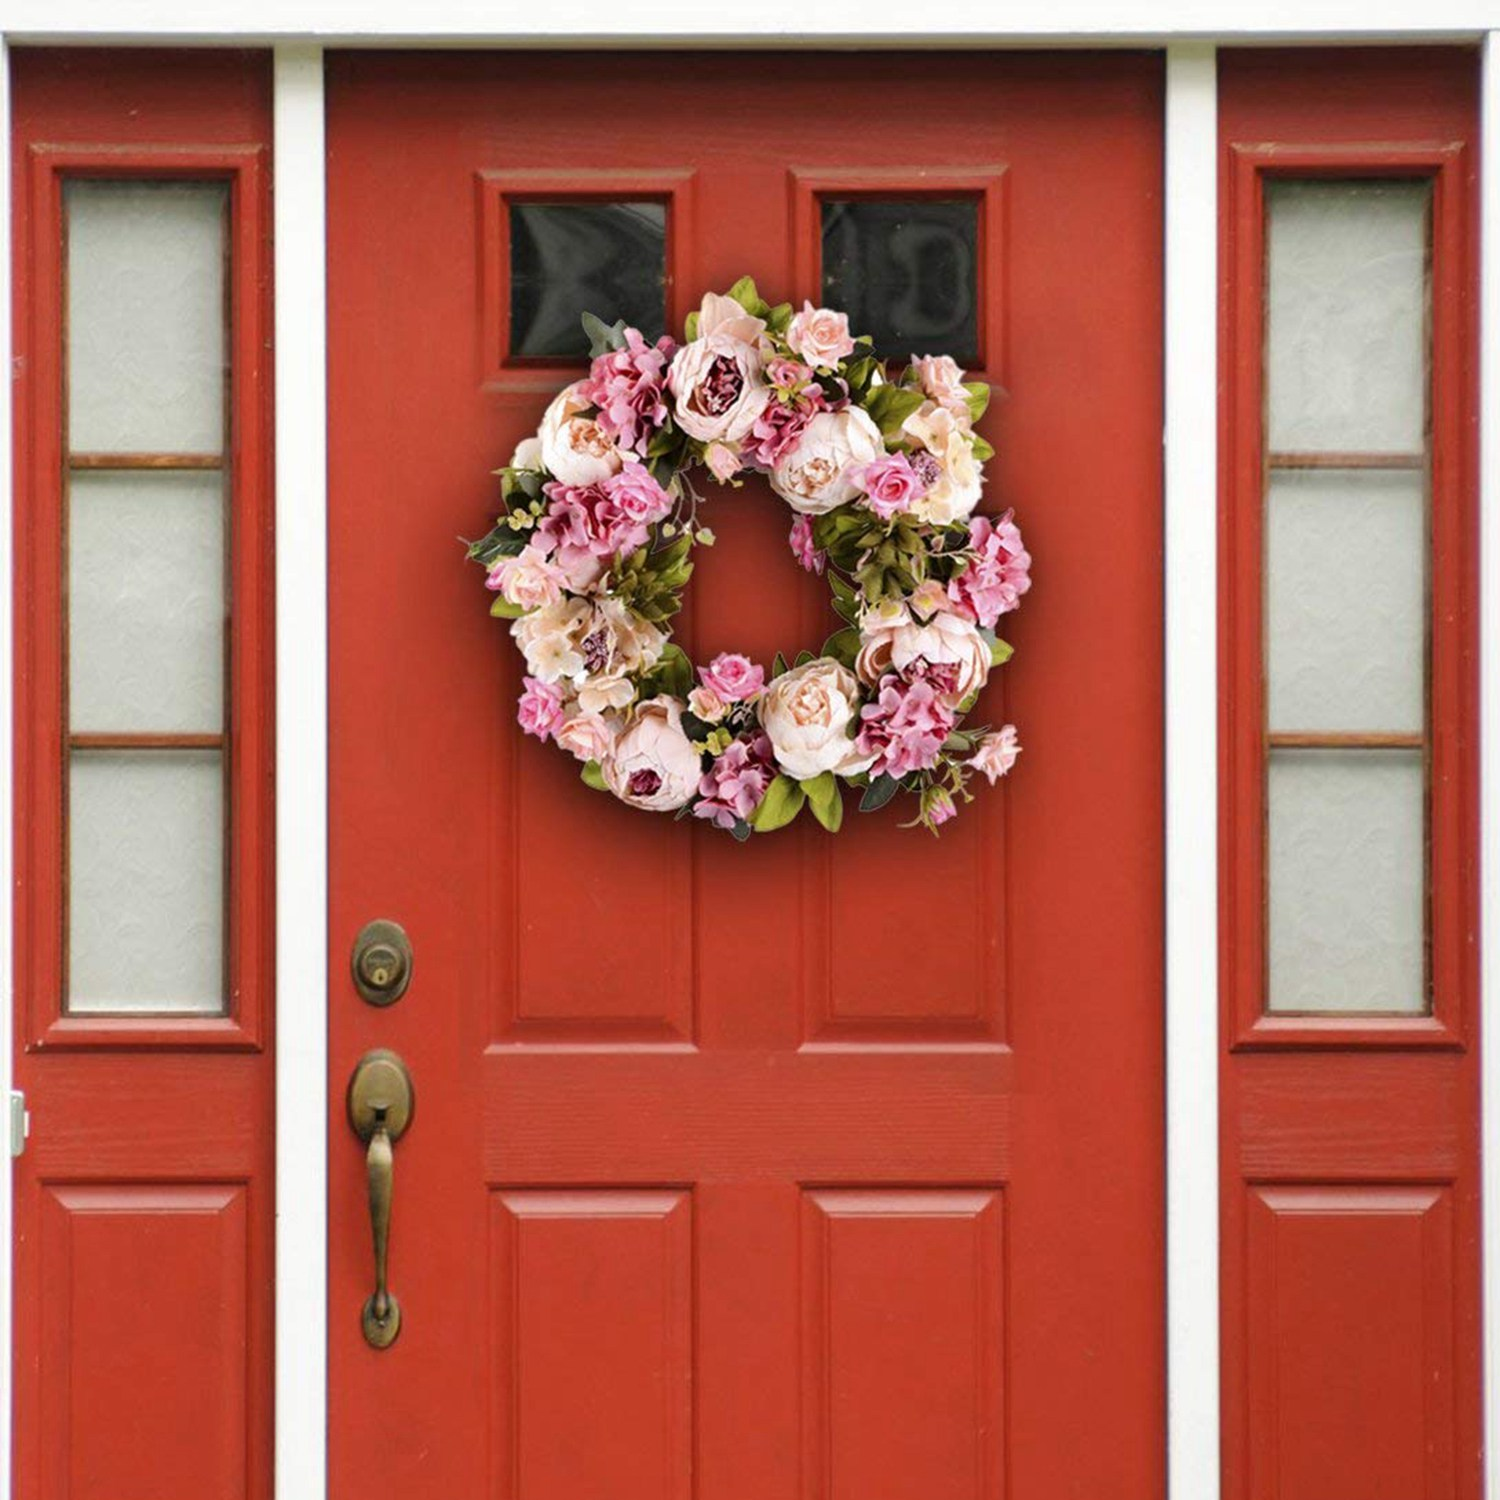 16inch Artificial Flowers Wreaths Door Perfect Quality Artificial Garland For Wedding Decoration Home Party Decor